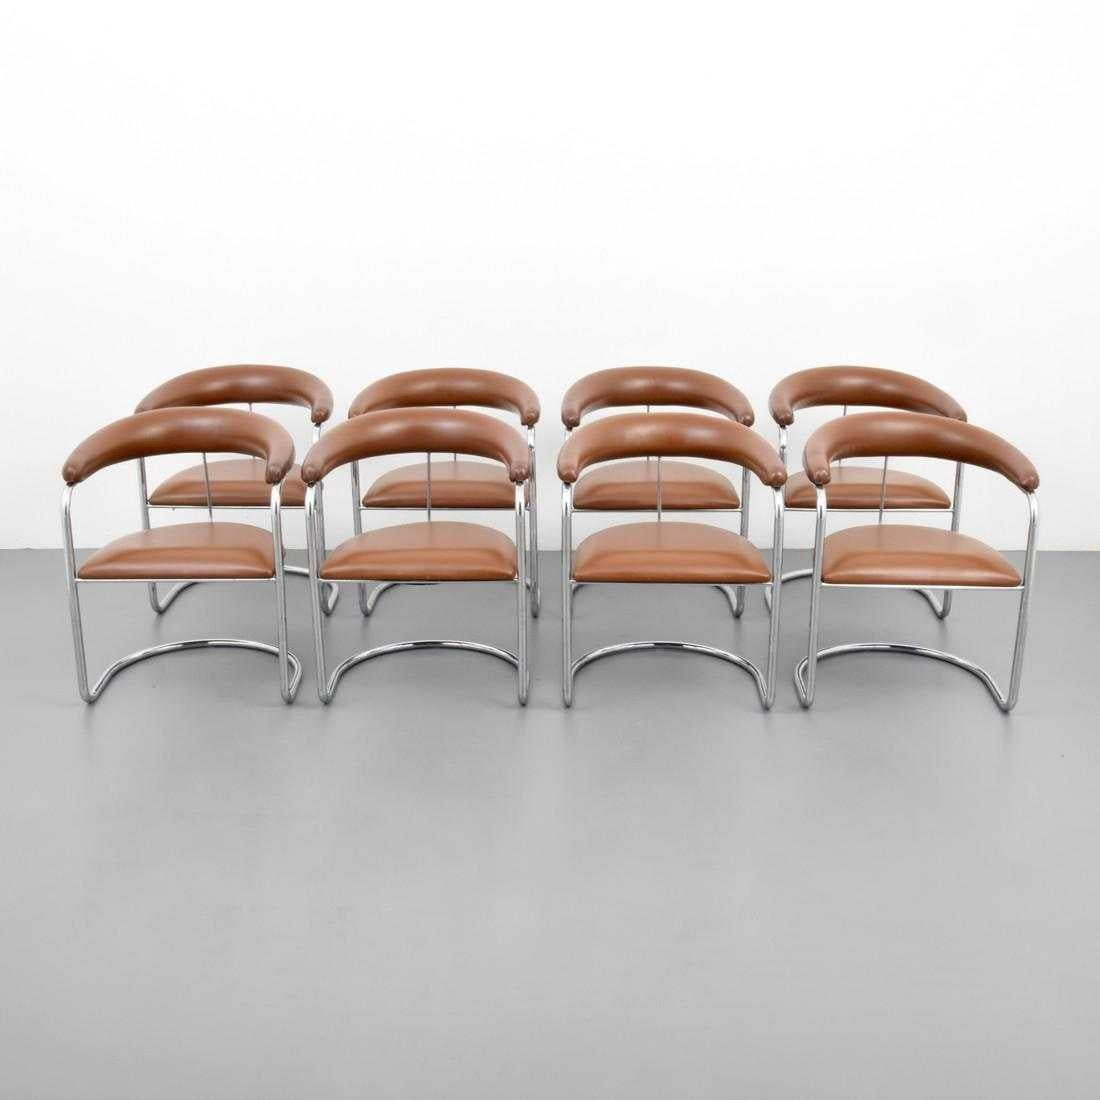 Thonet Chairs Dining Classic Anton For Lorenz Eight OZiTXPuk